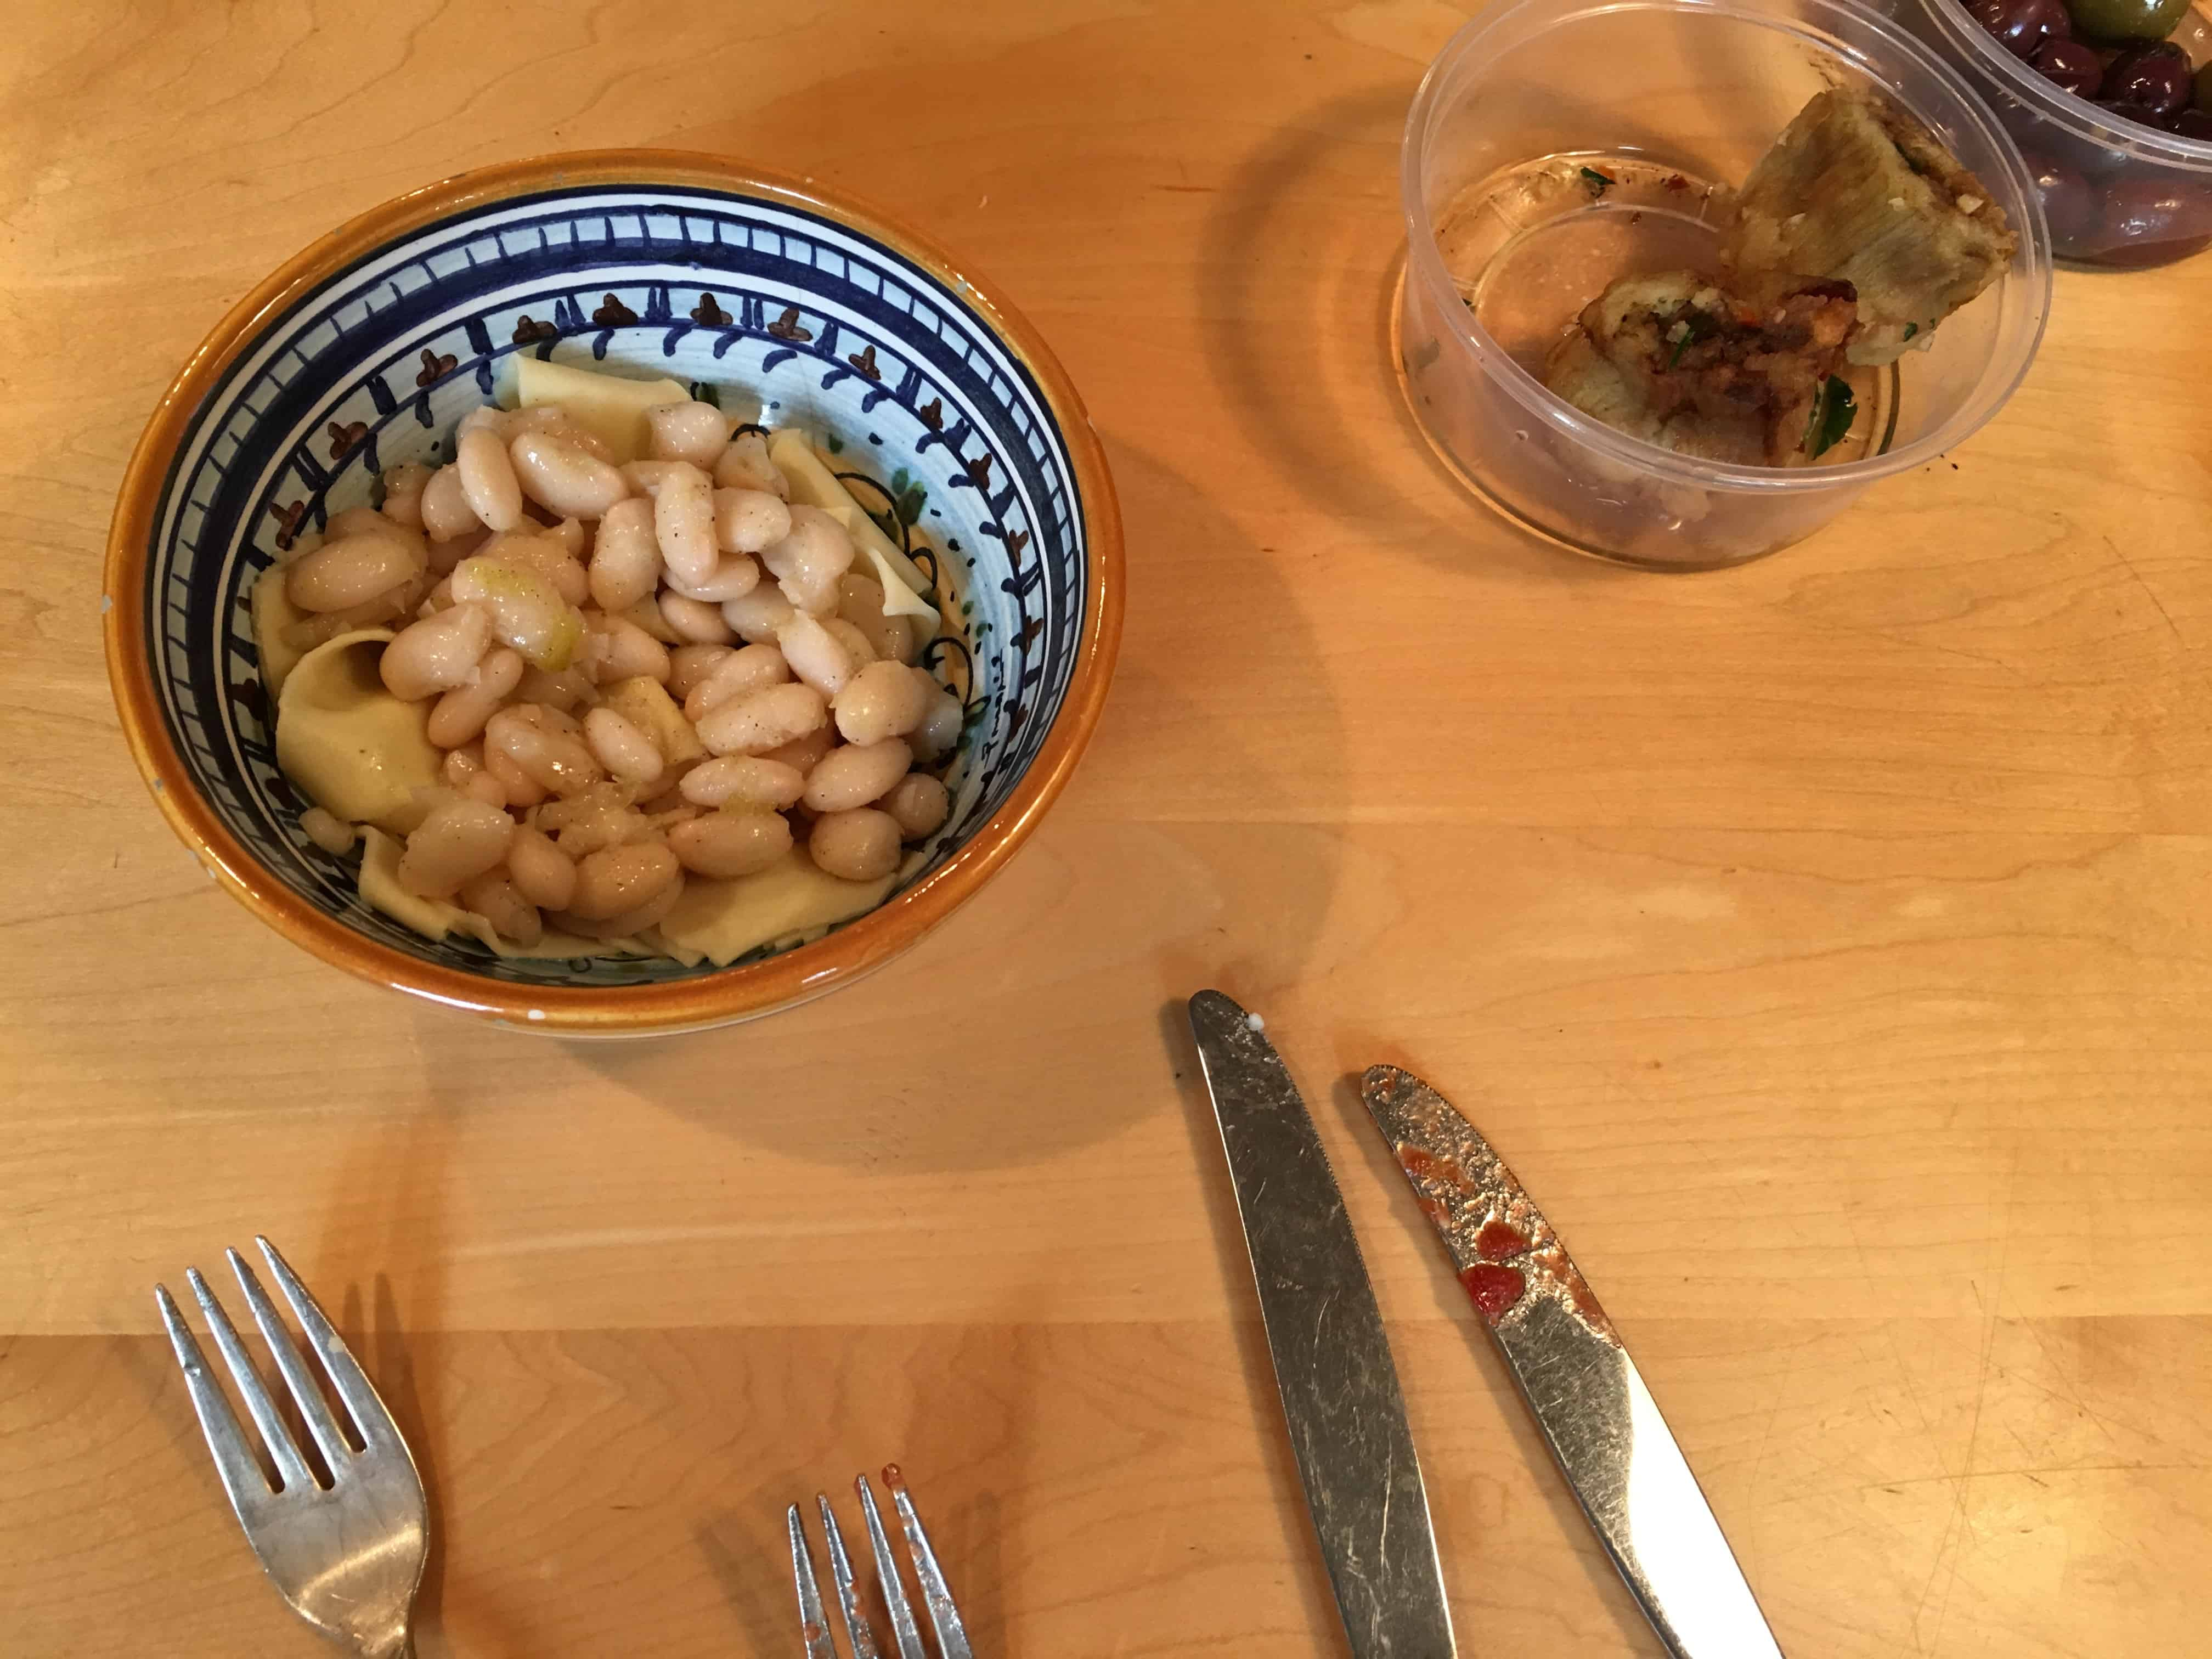 Defrosted and dressed, leftover white beans, from Broccoli Rabe and White Bean Soup recipe.